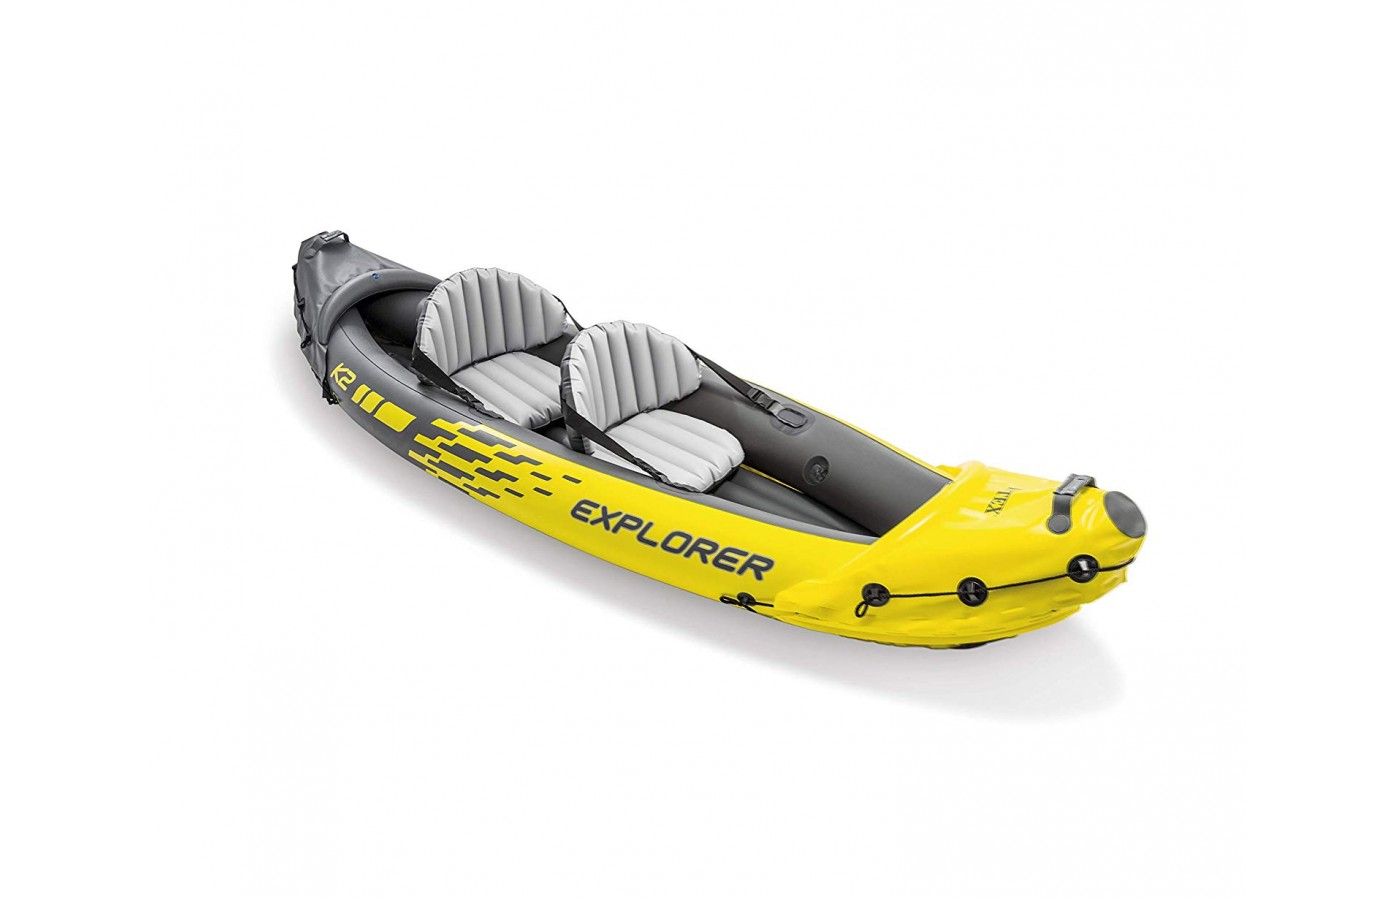 Two average-sized adults have plenty of room in the kayak.